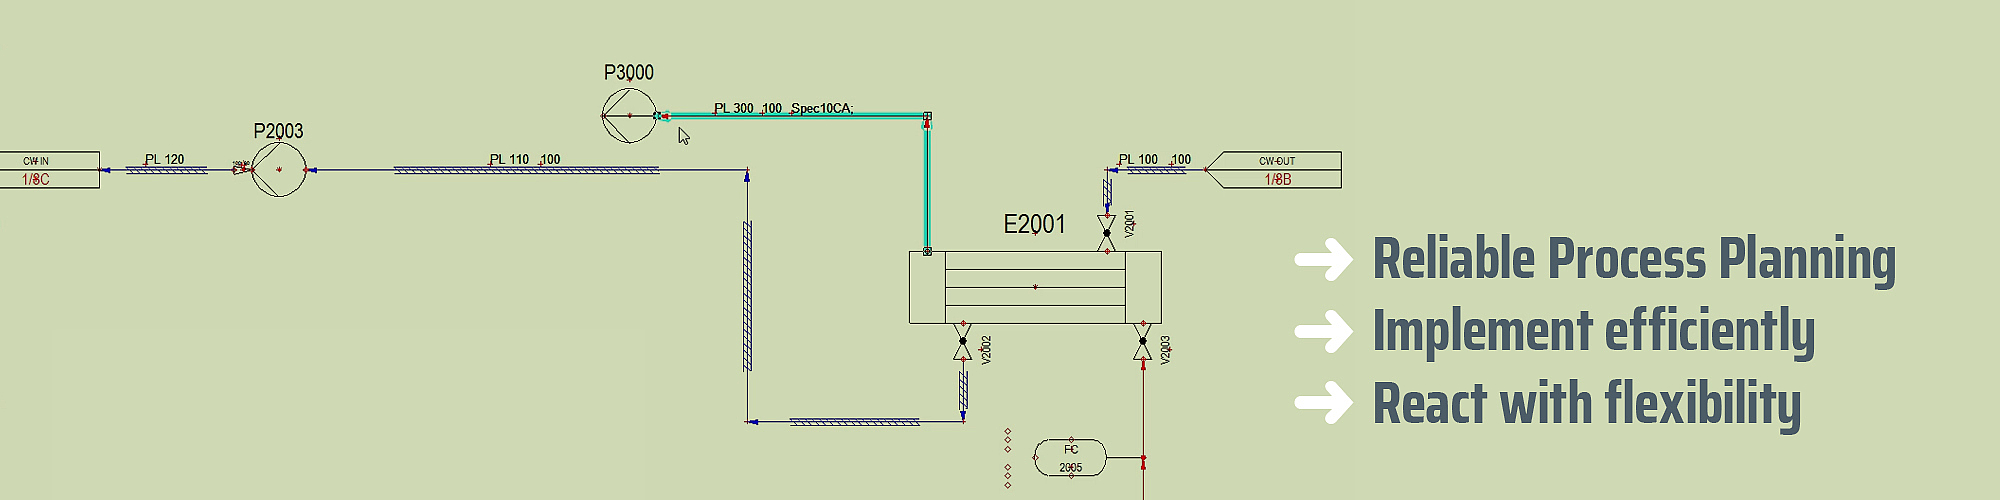 High Quality Schematic Symbols To Design Your Own Schematic Circuit